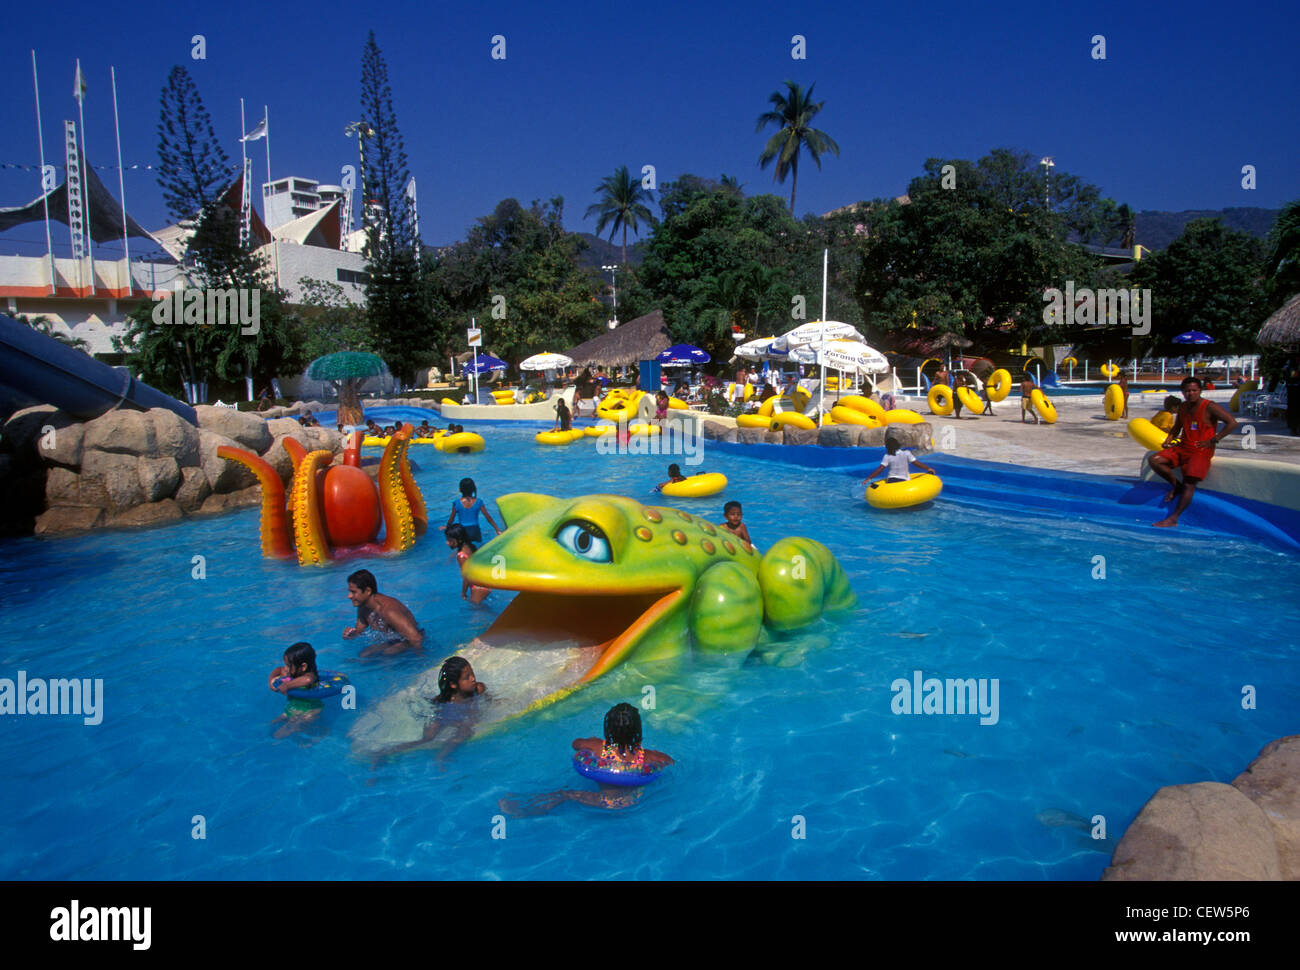 Acapulquena stock photos acapulquena stock images alamy for What is a freshwater swimming pool